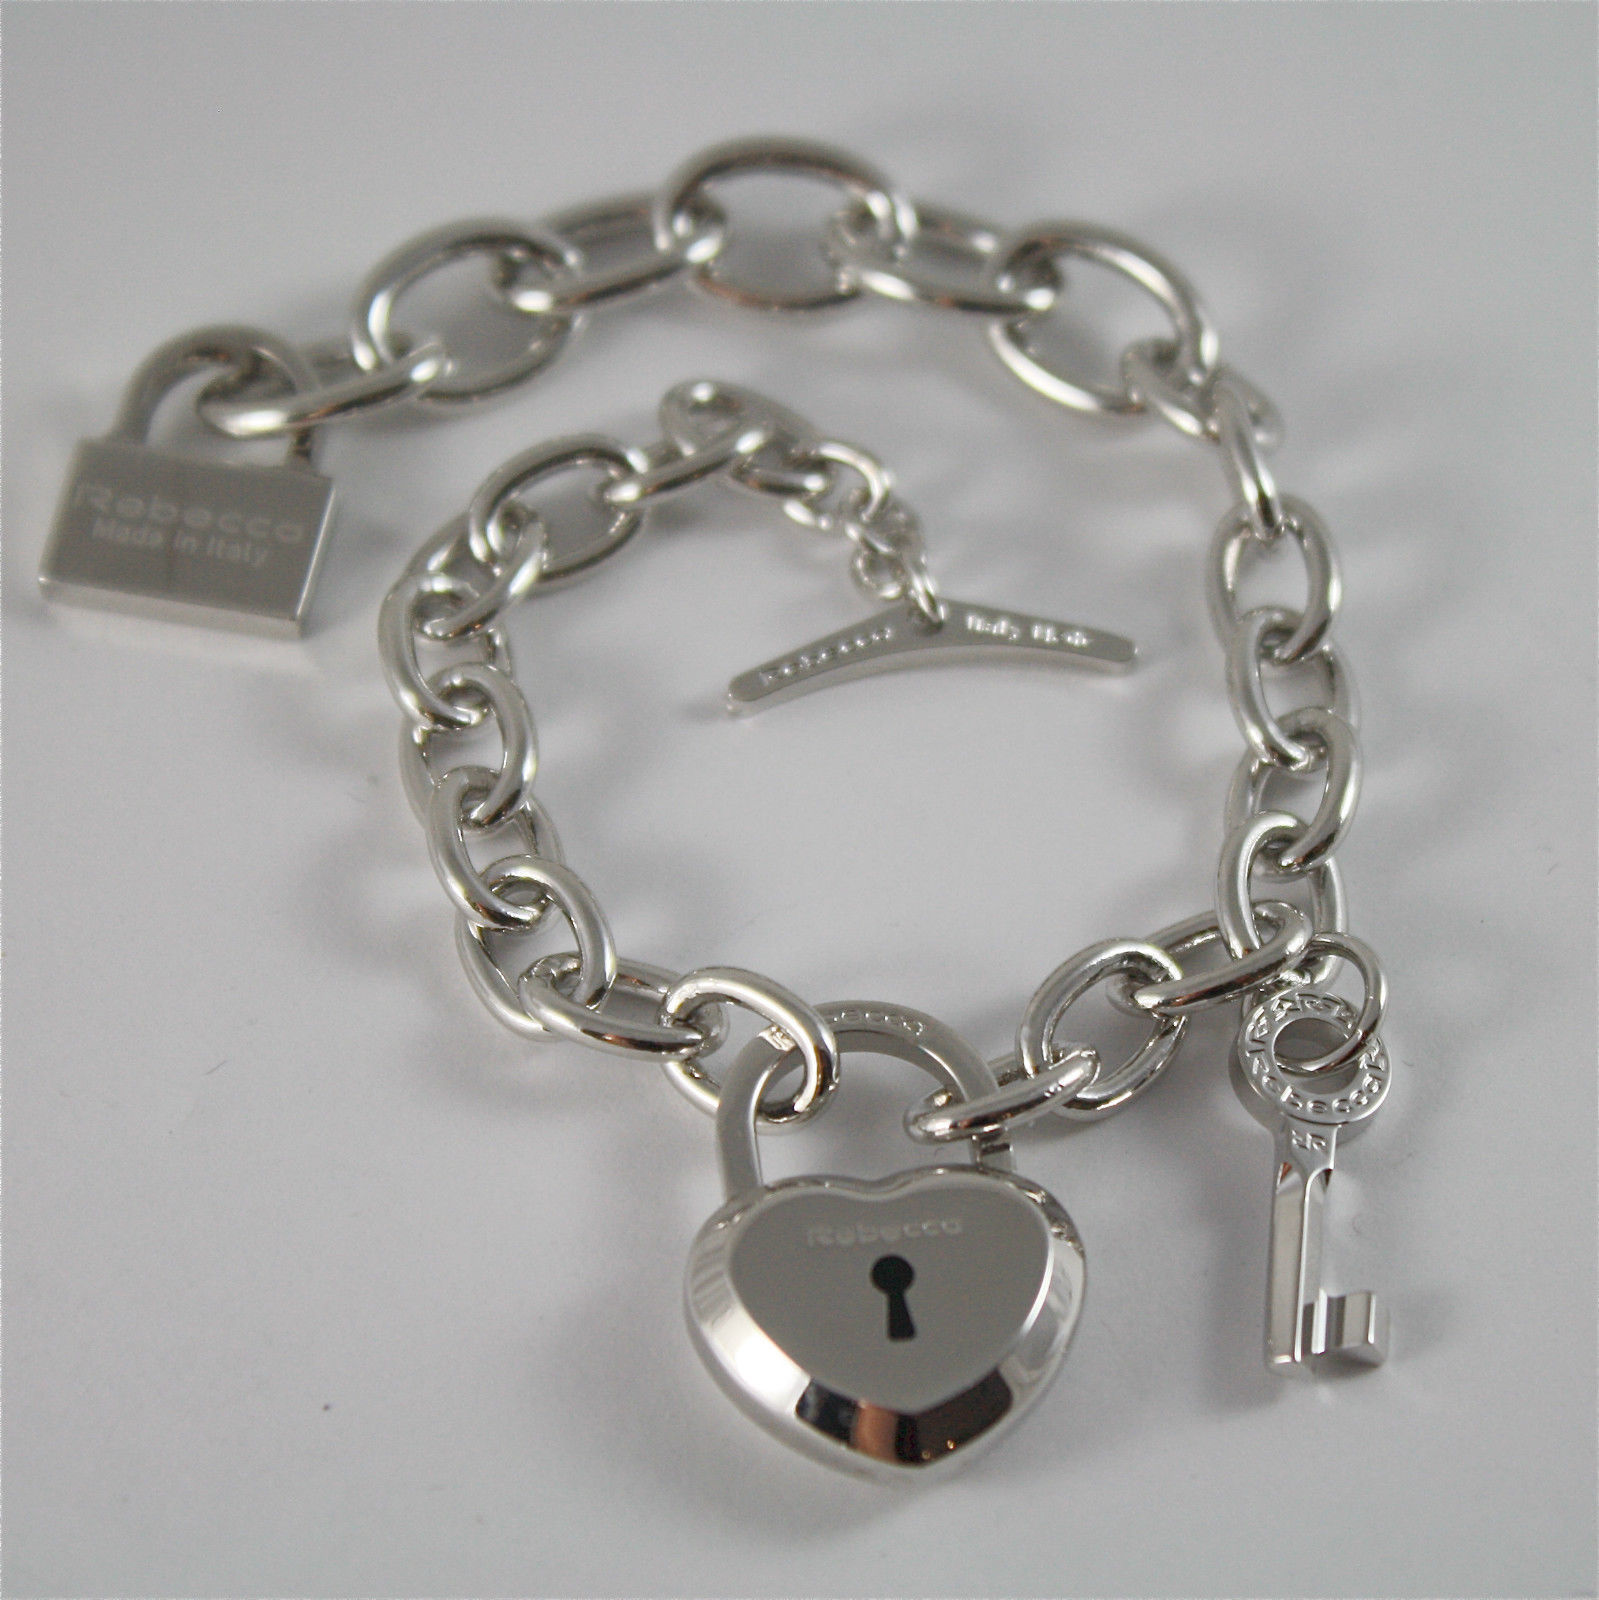 WHITE GOLD PLATED BRONZE REBECCA BRACELET LOVE LOCK BLLBBB04 MADE IN ITALY 7.87